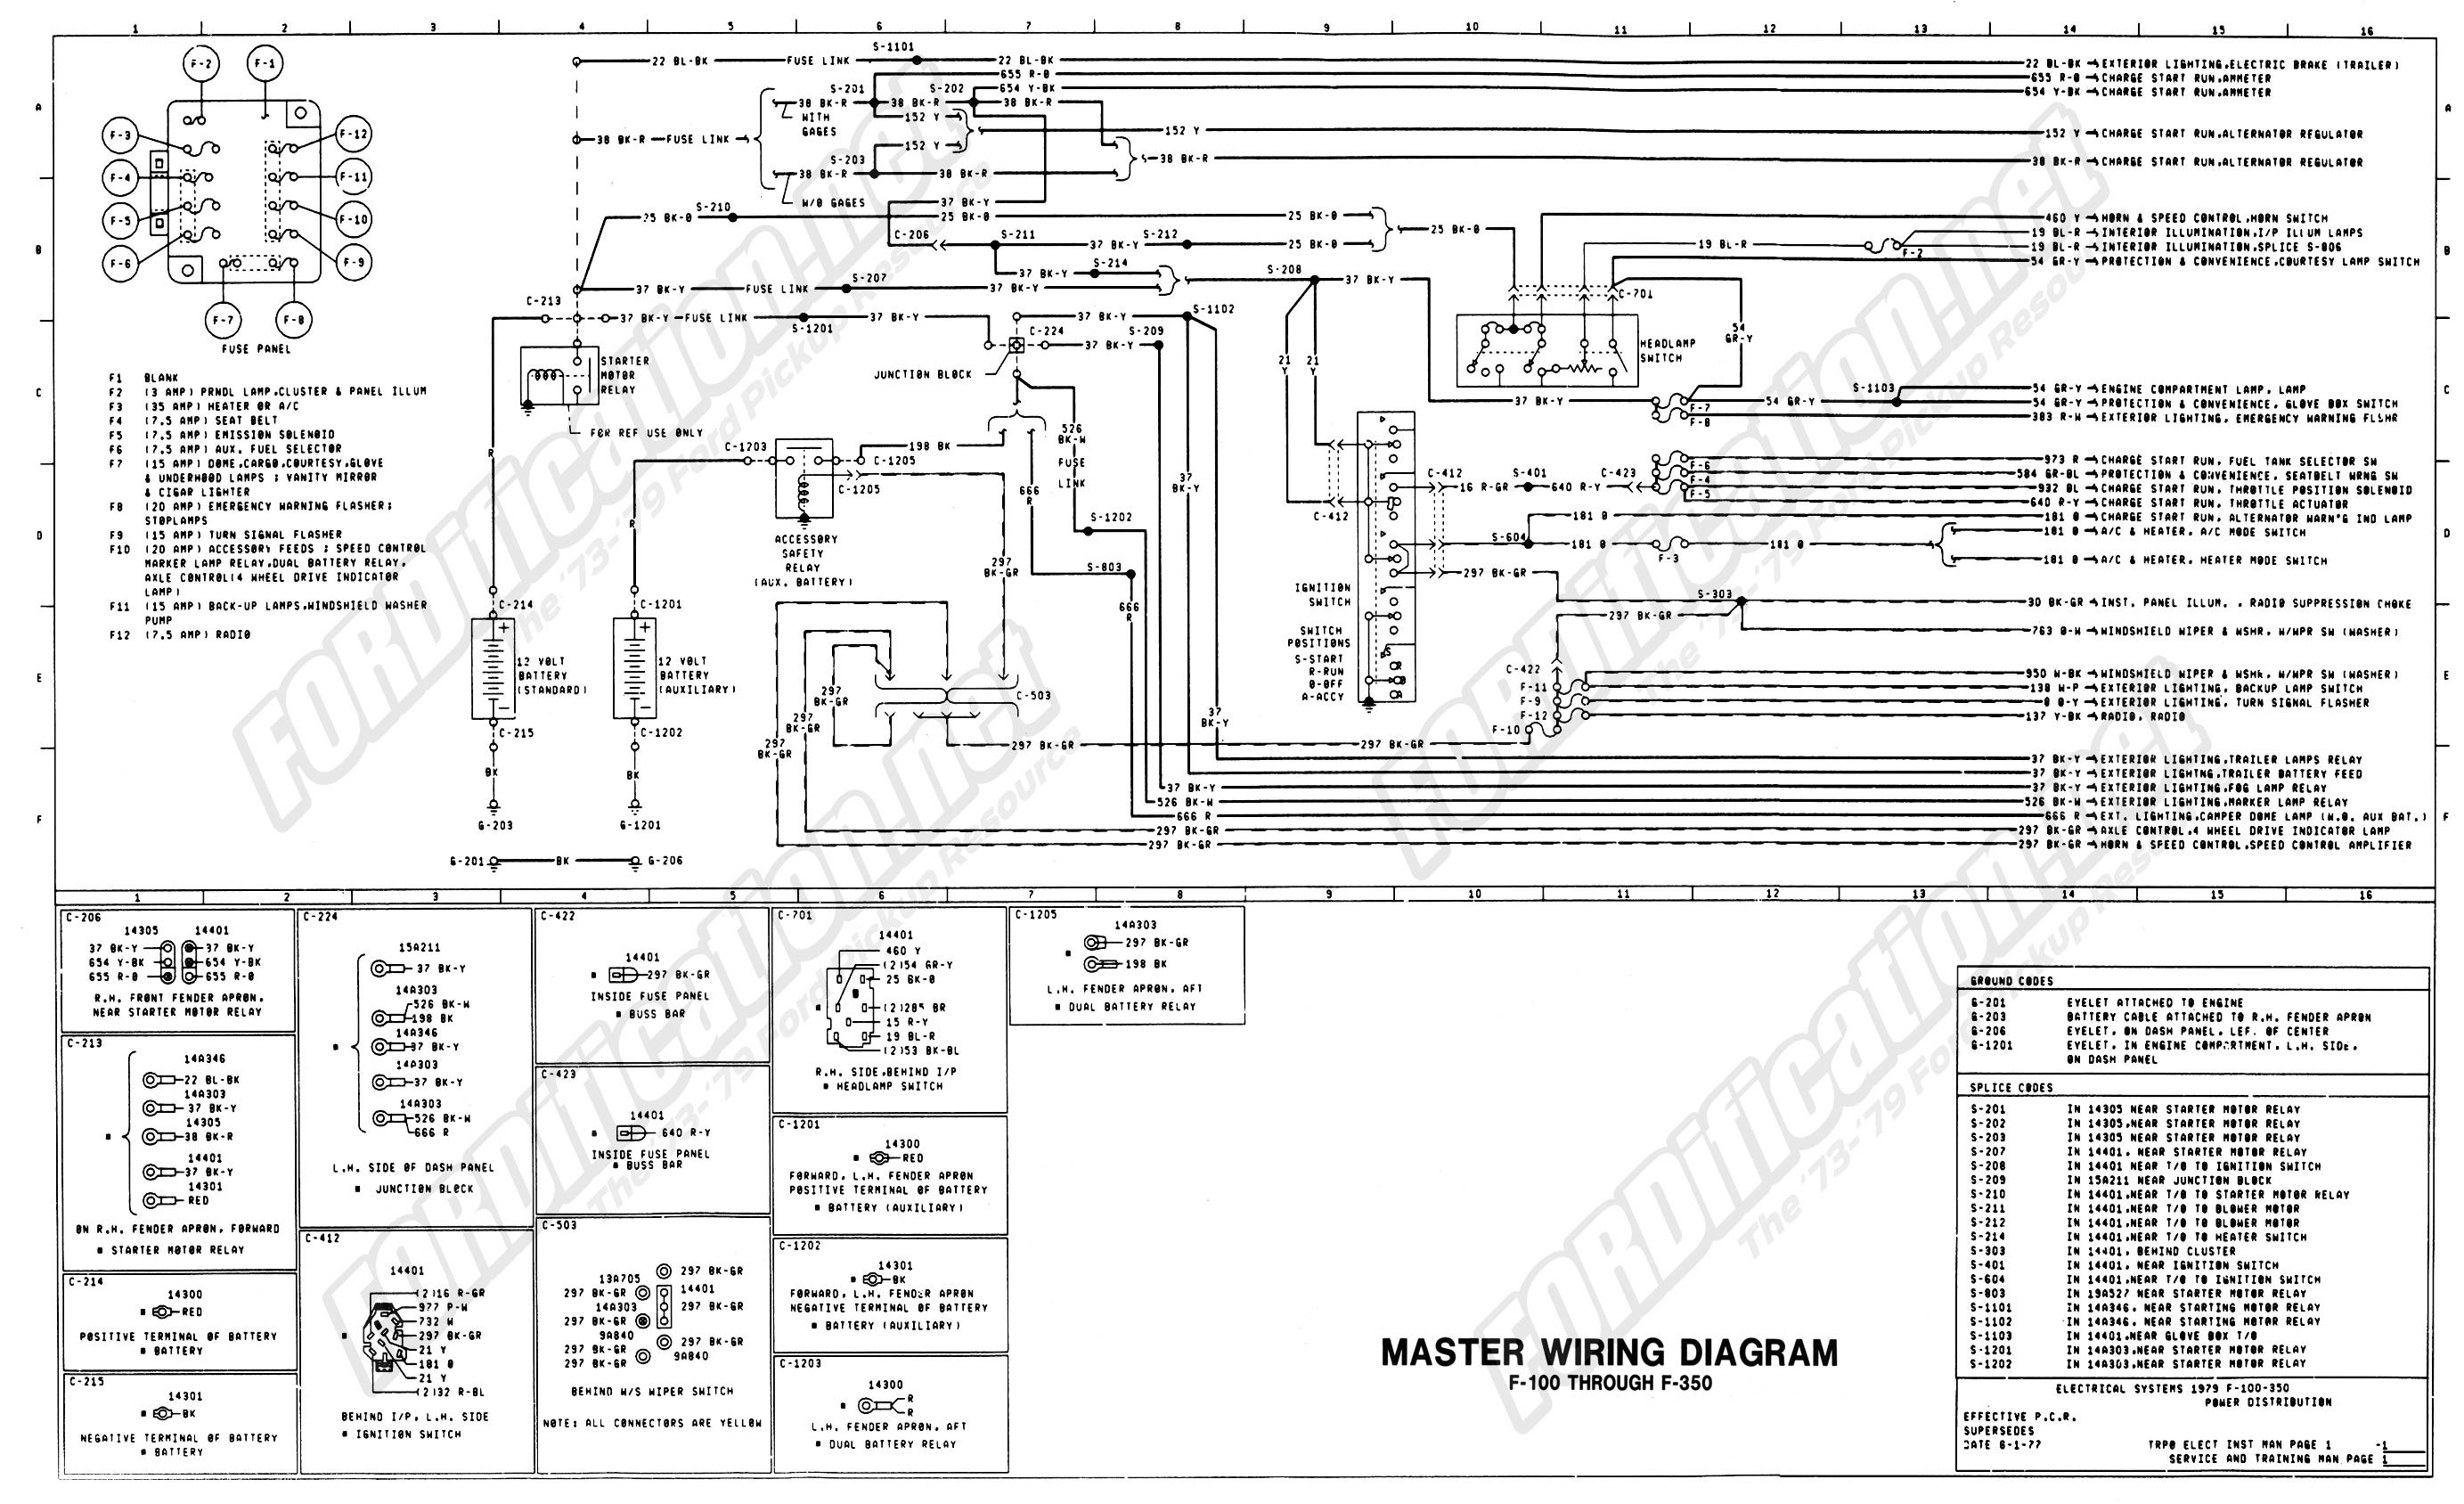 ford 302 engine diagram my wiring diagram rh detoxicrecenze com Ford 302 Engine Parts Diagram Ford 302 Engine Parts Diagram